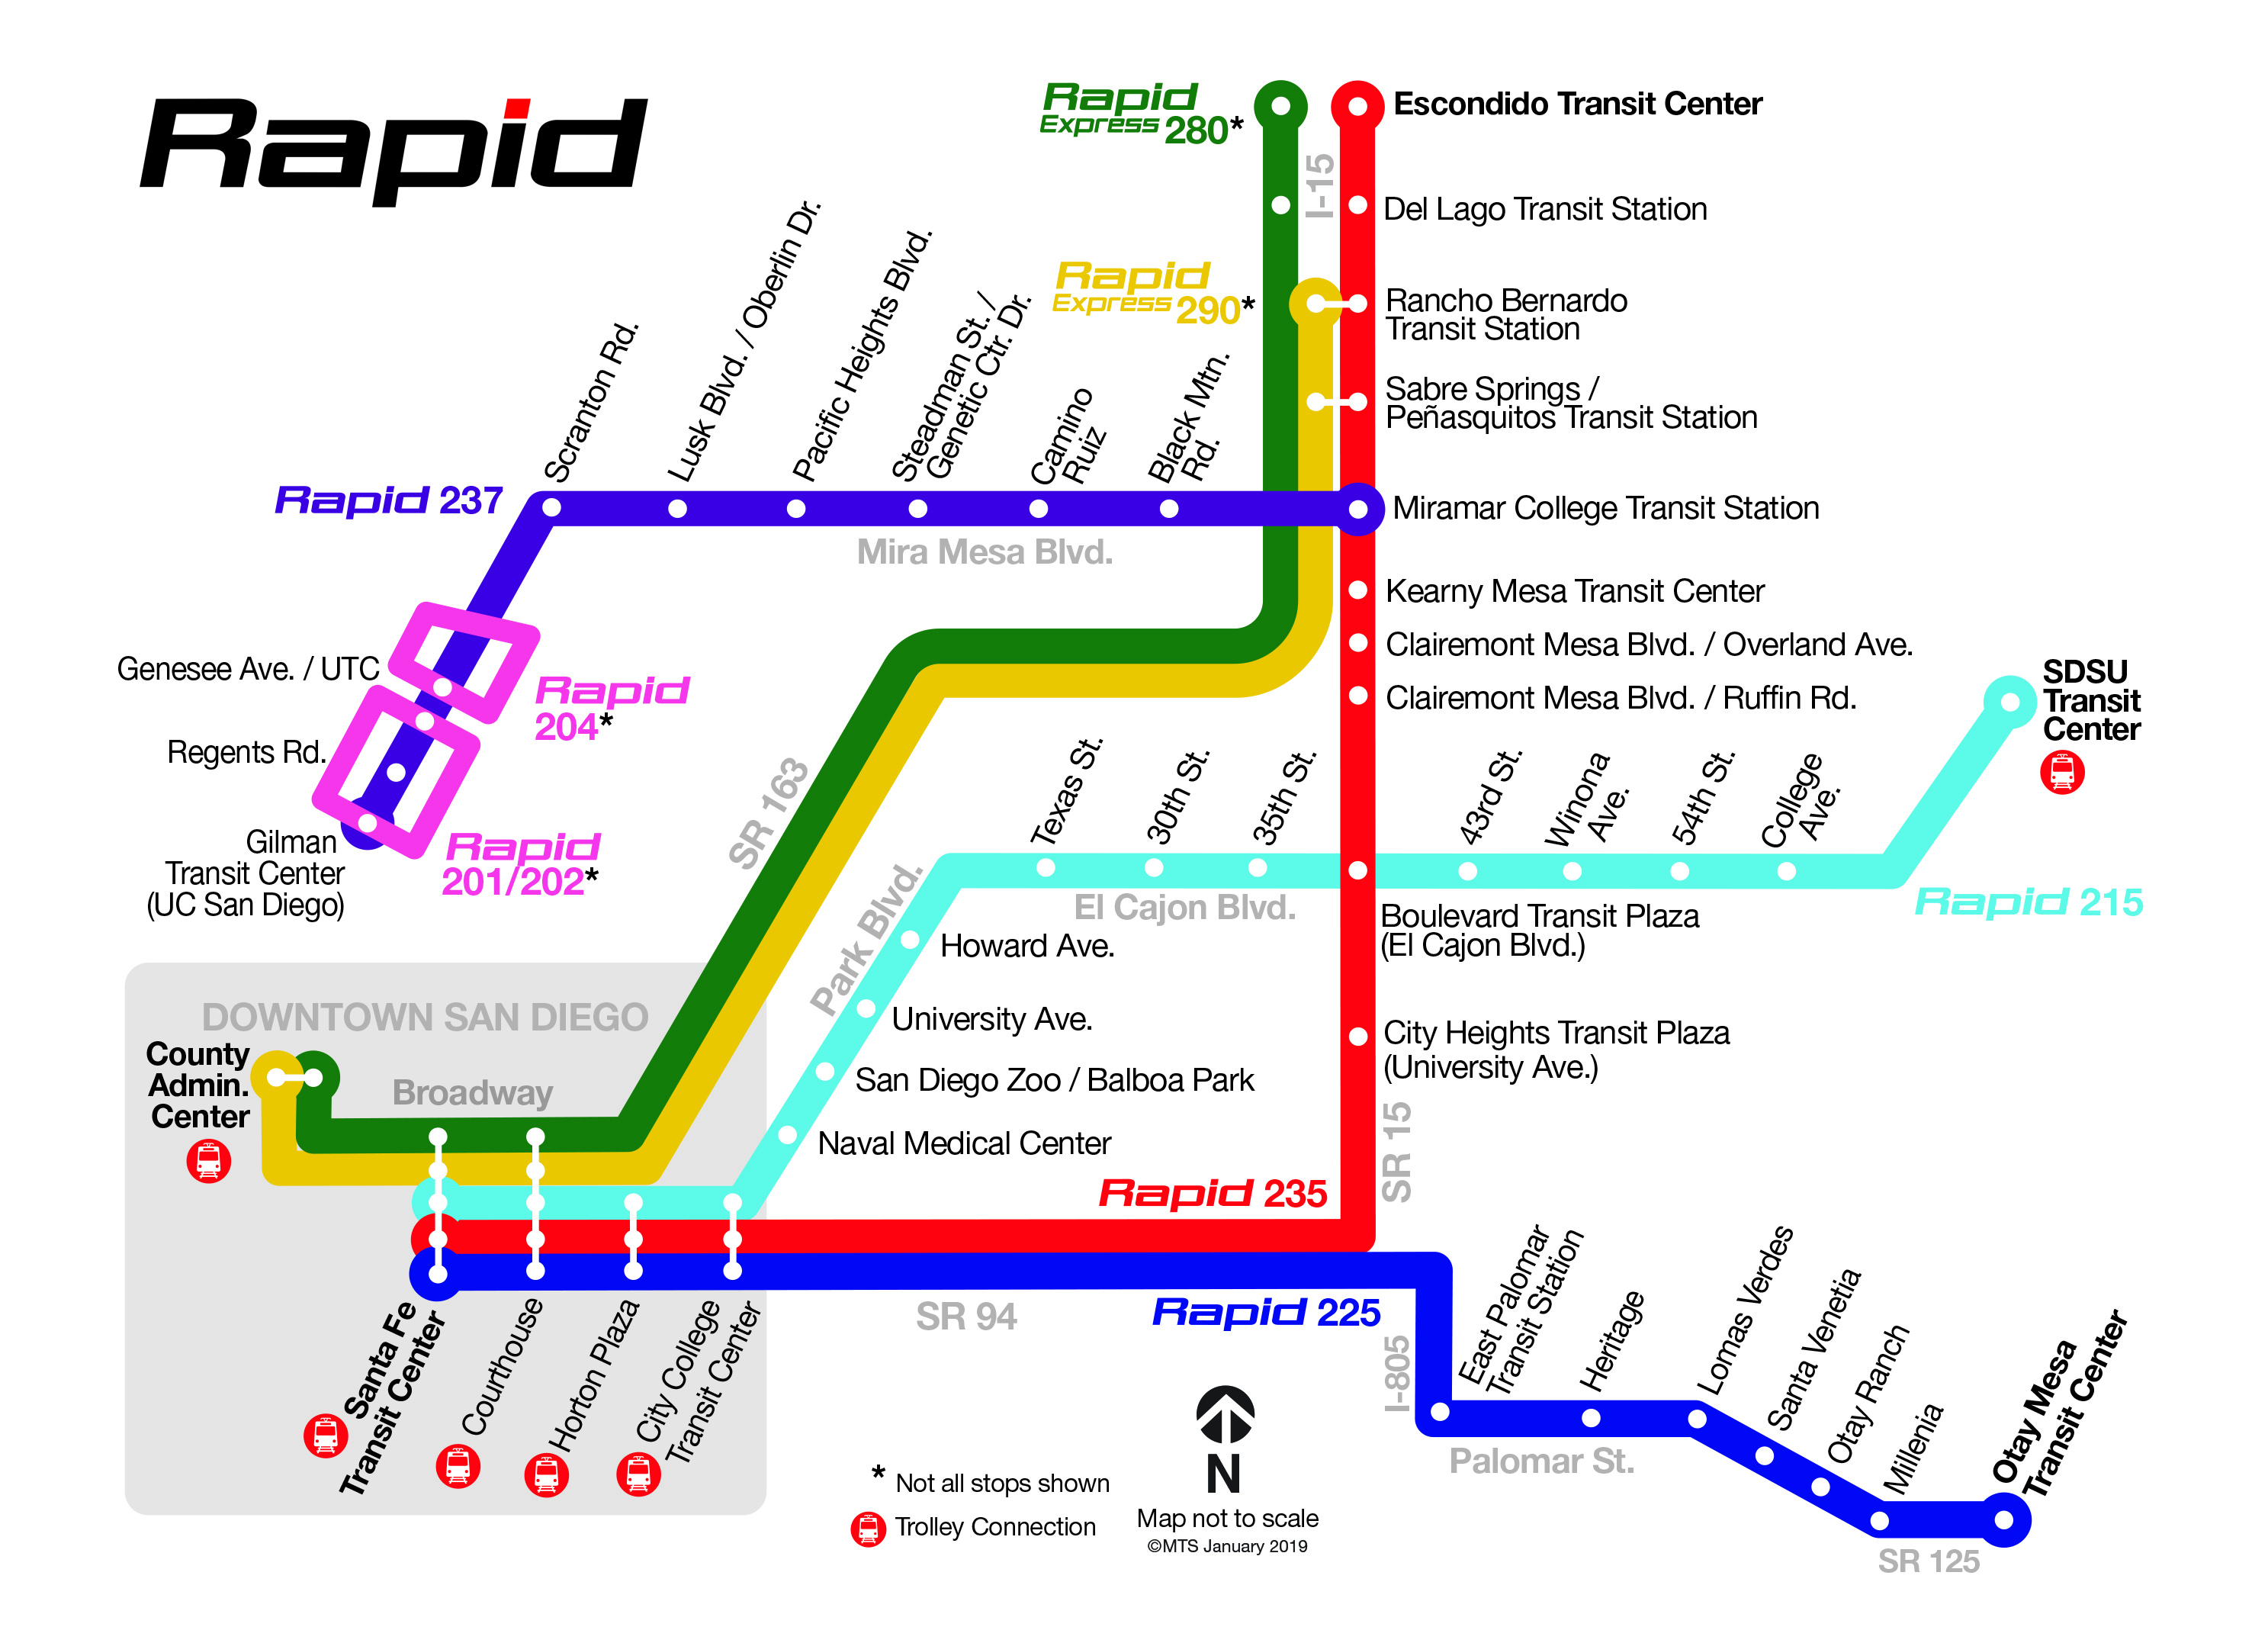 Rapid | San go Metropolitan Transit System on florida street maps, neighborhood street maps, san francisco street maps, local street maps, washington street maps, orlando street maps, zip code street maps, austin street maps, oakland street maps, texas street maps, home street maps, international street maps, area street maps, city street maps, world street maps, oxford street maps, miami street maps, hudson street maps,